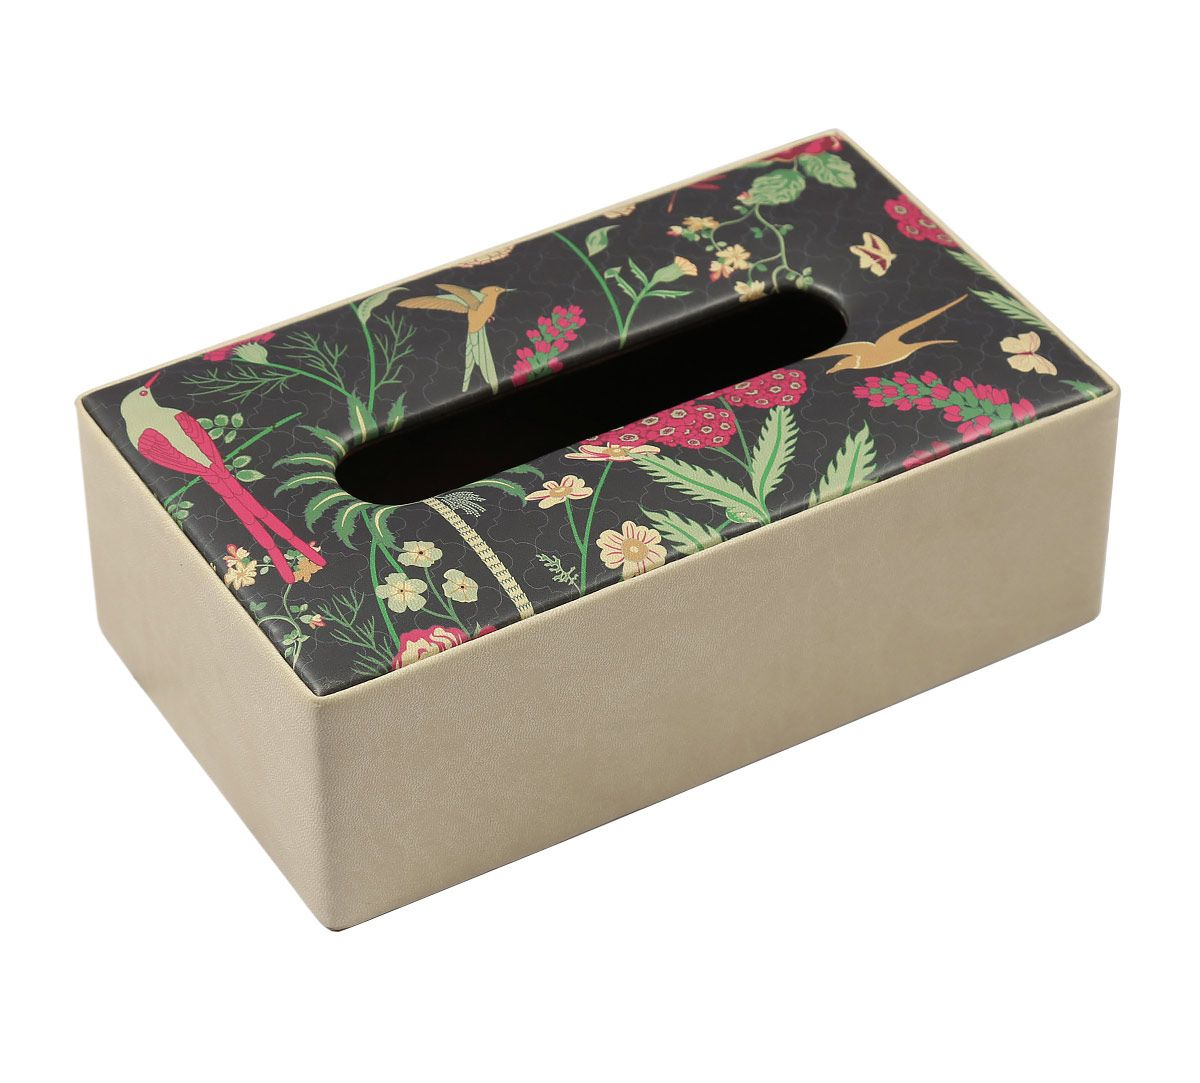 India Circus Floral Galore Leather Tissue Box Holder